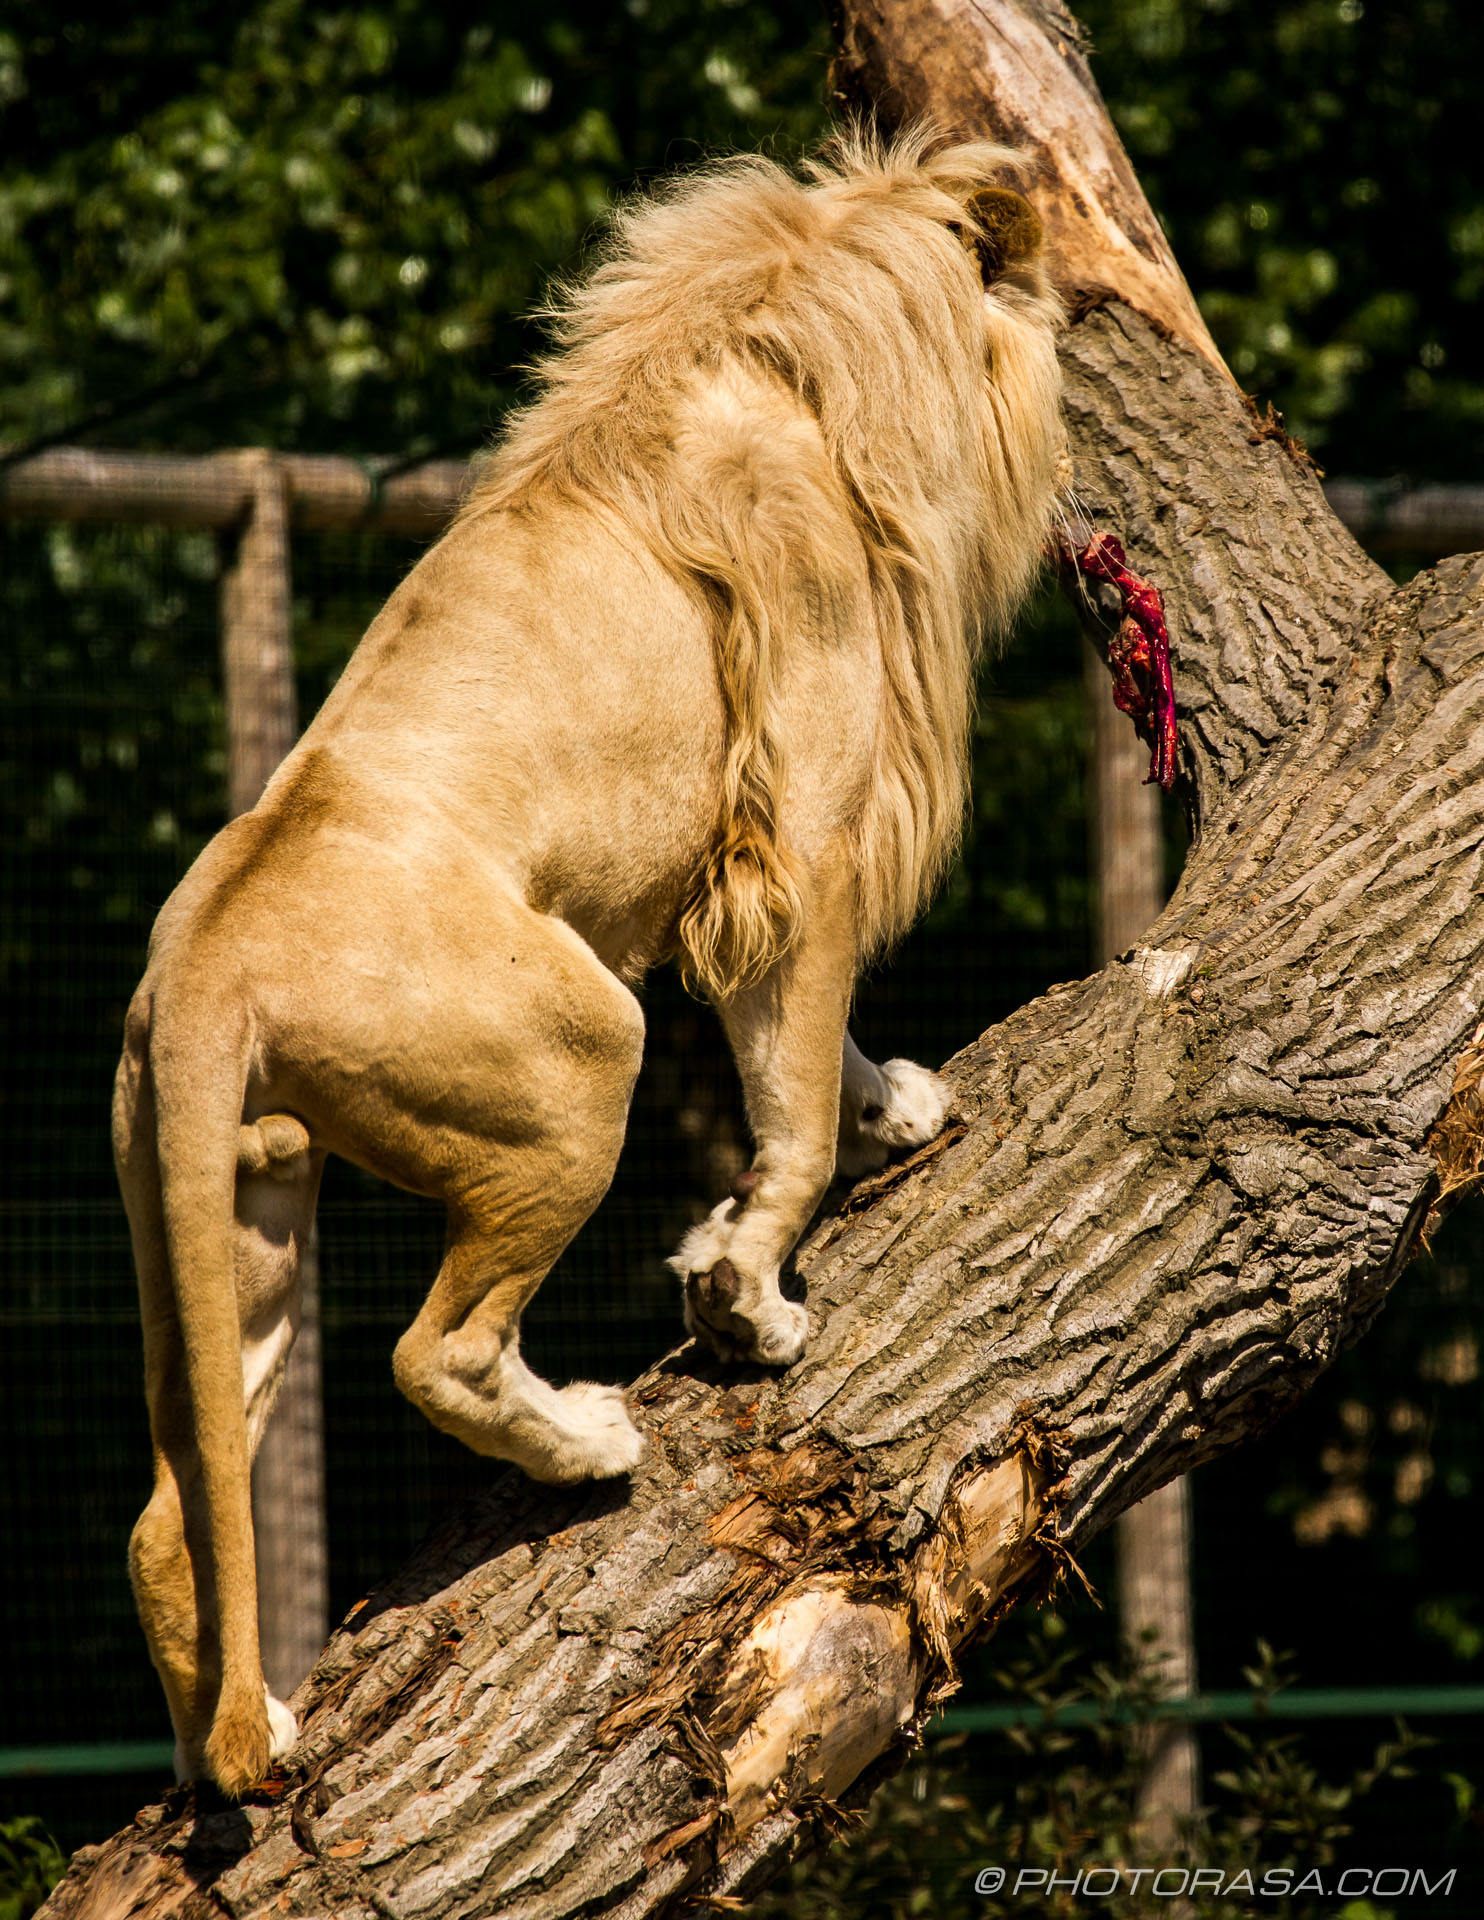 http://photorasa.com/white-lion/white-lion-up-a-tree/